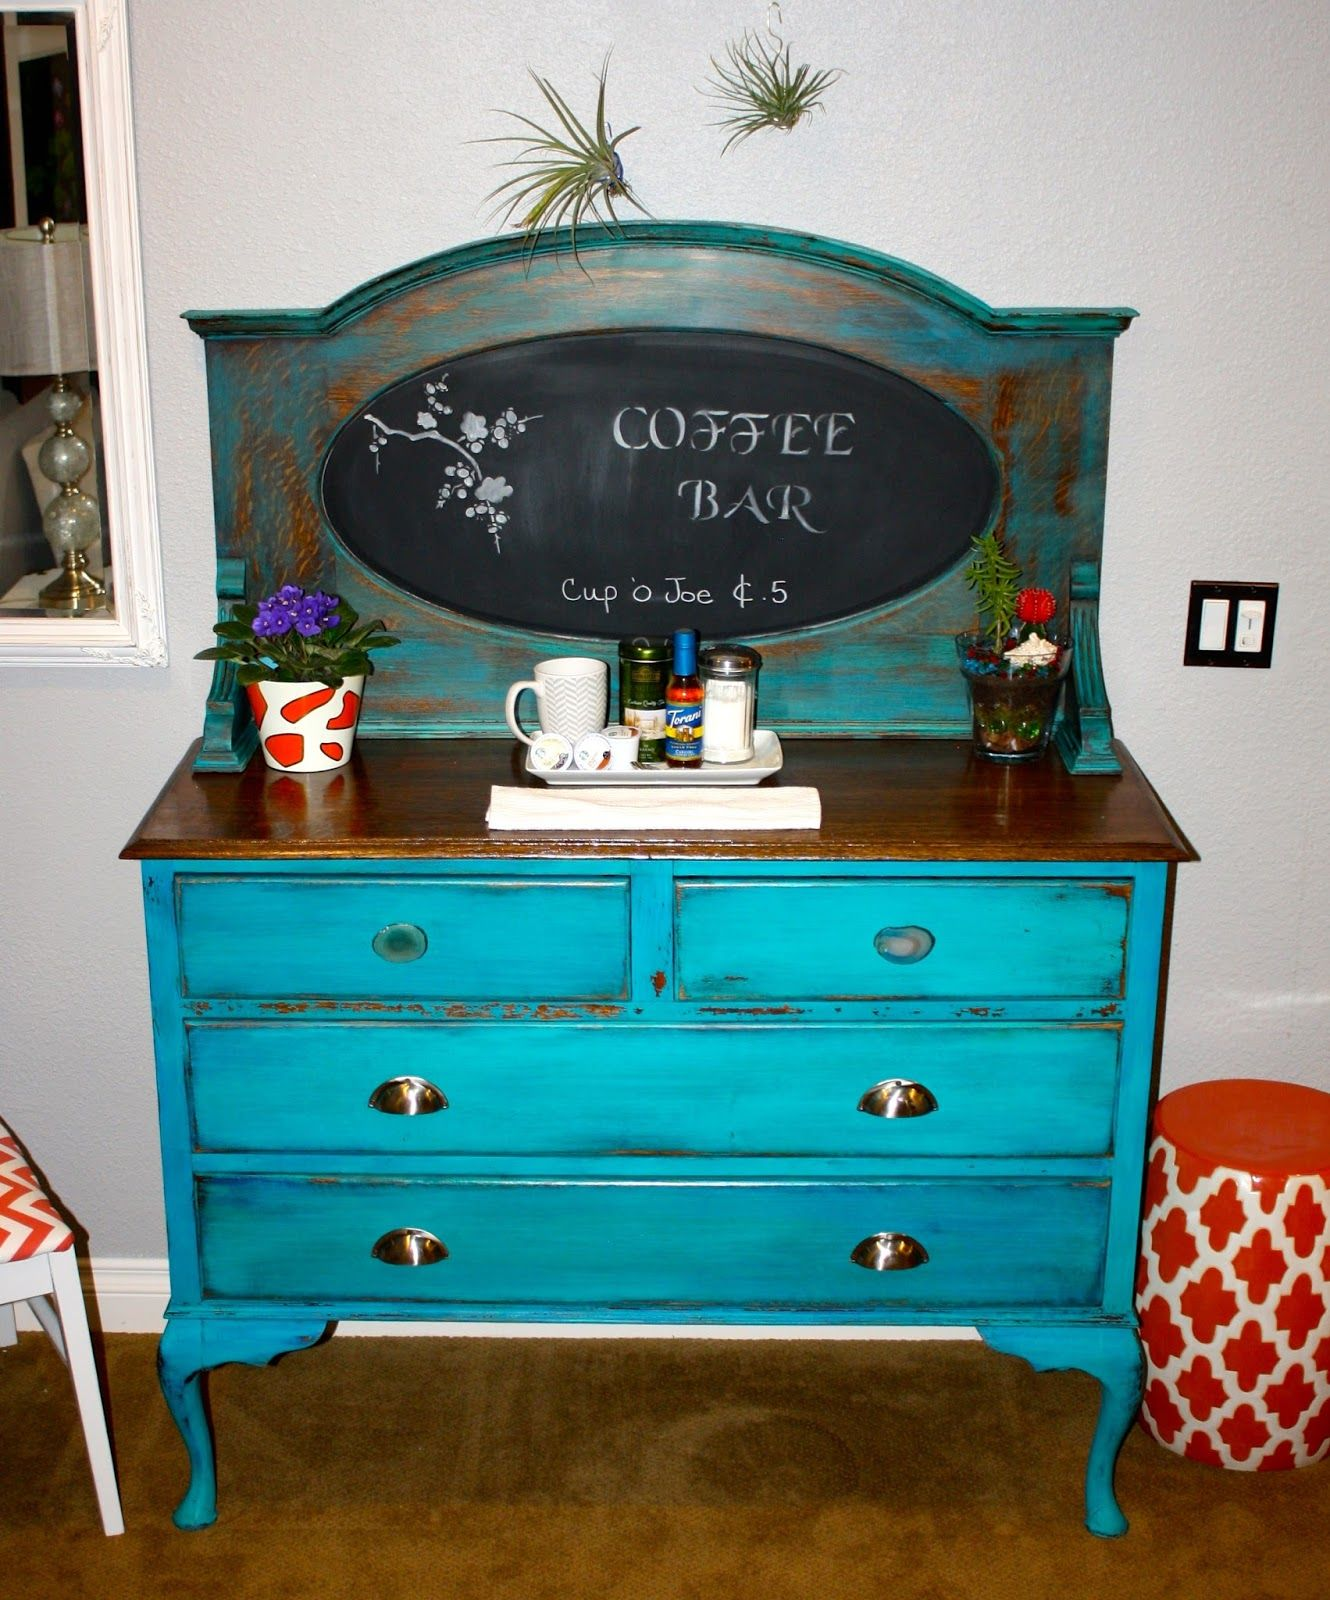 turquoise painted furniture ideas. Furniture Redo · Repurposed An Antique Buffet Into A Coffee Bar. Turquoise Milk Paint! Painted Ideas